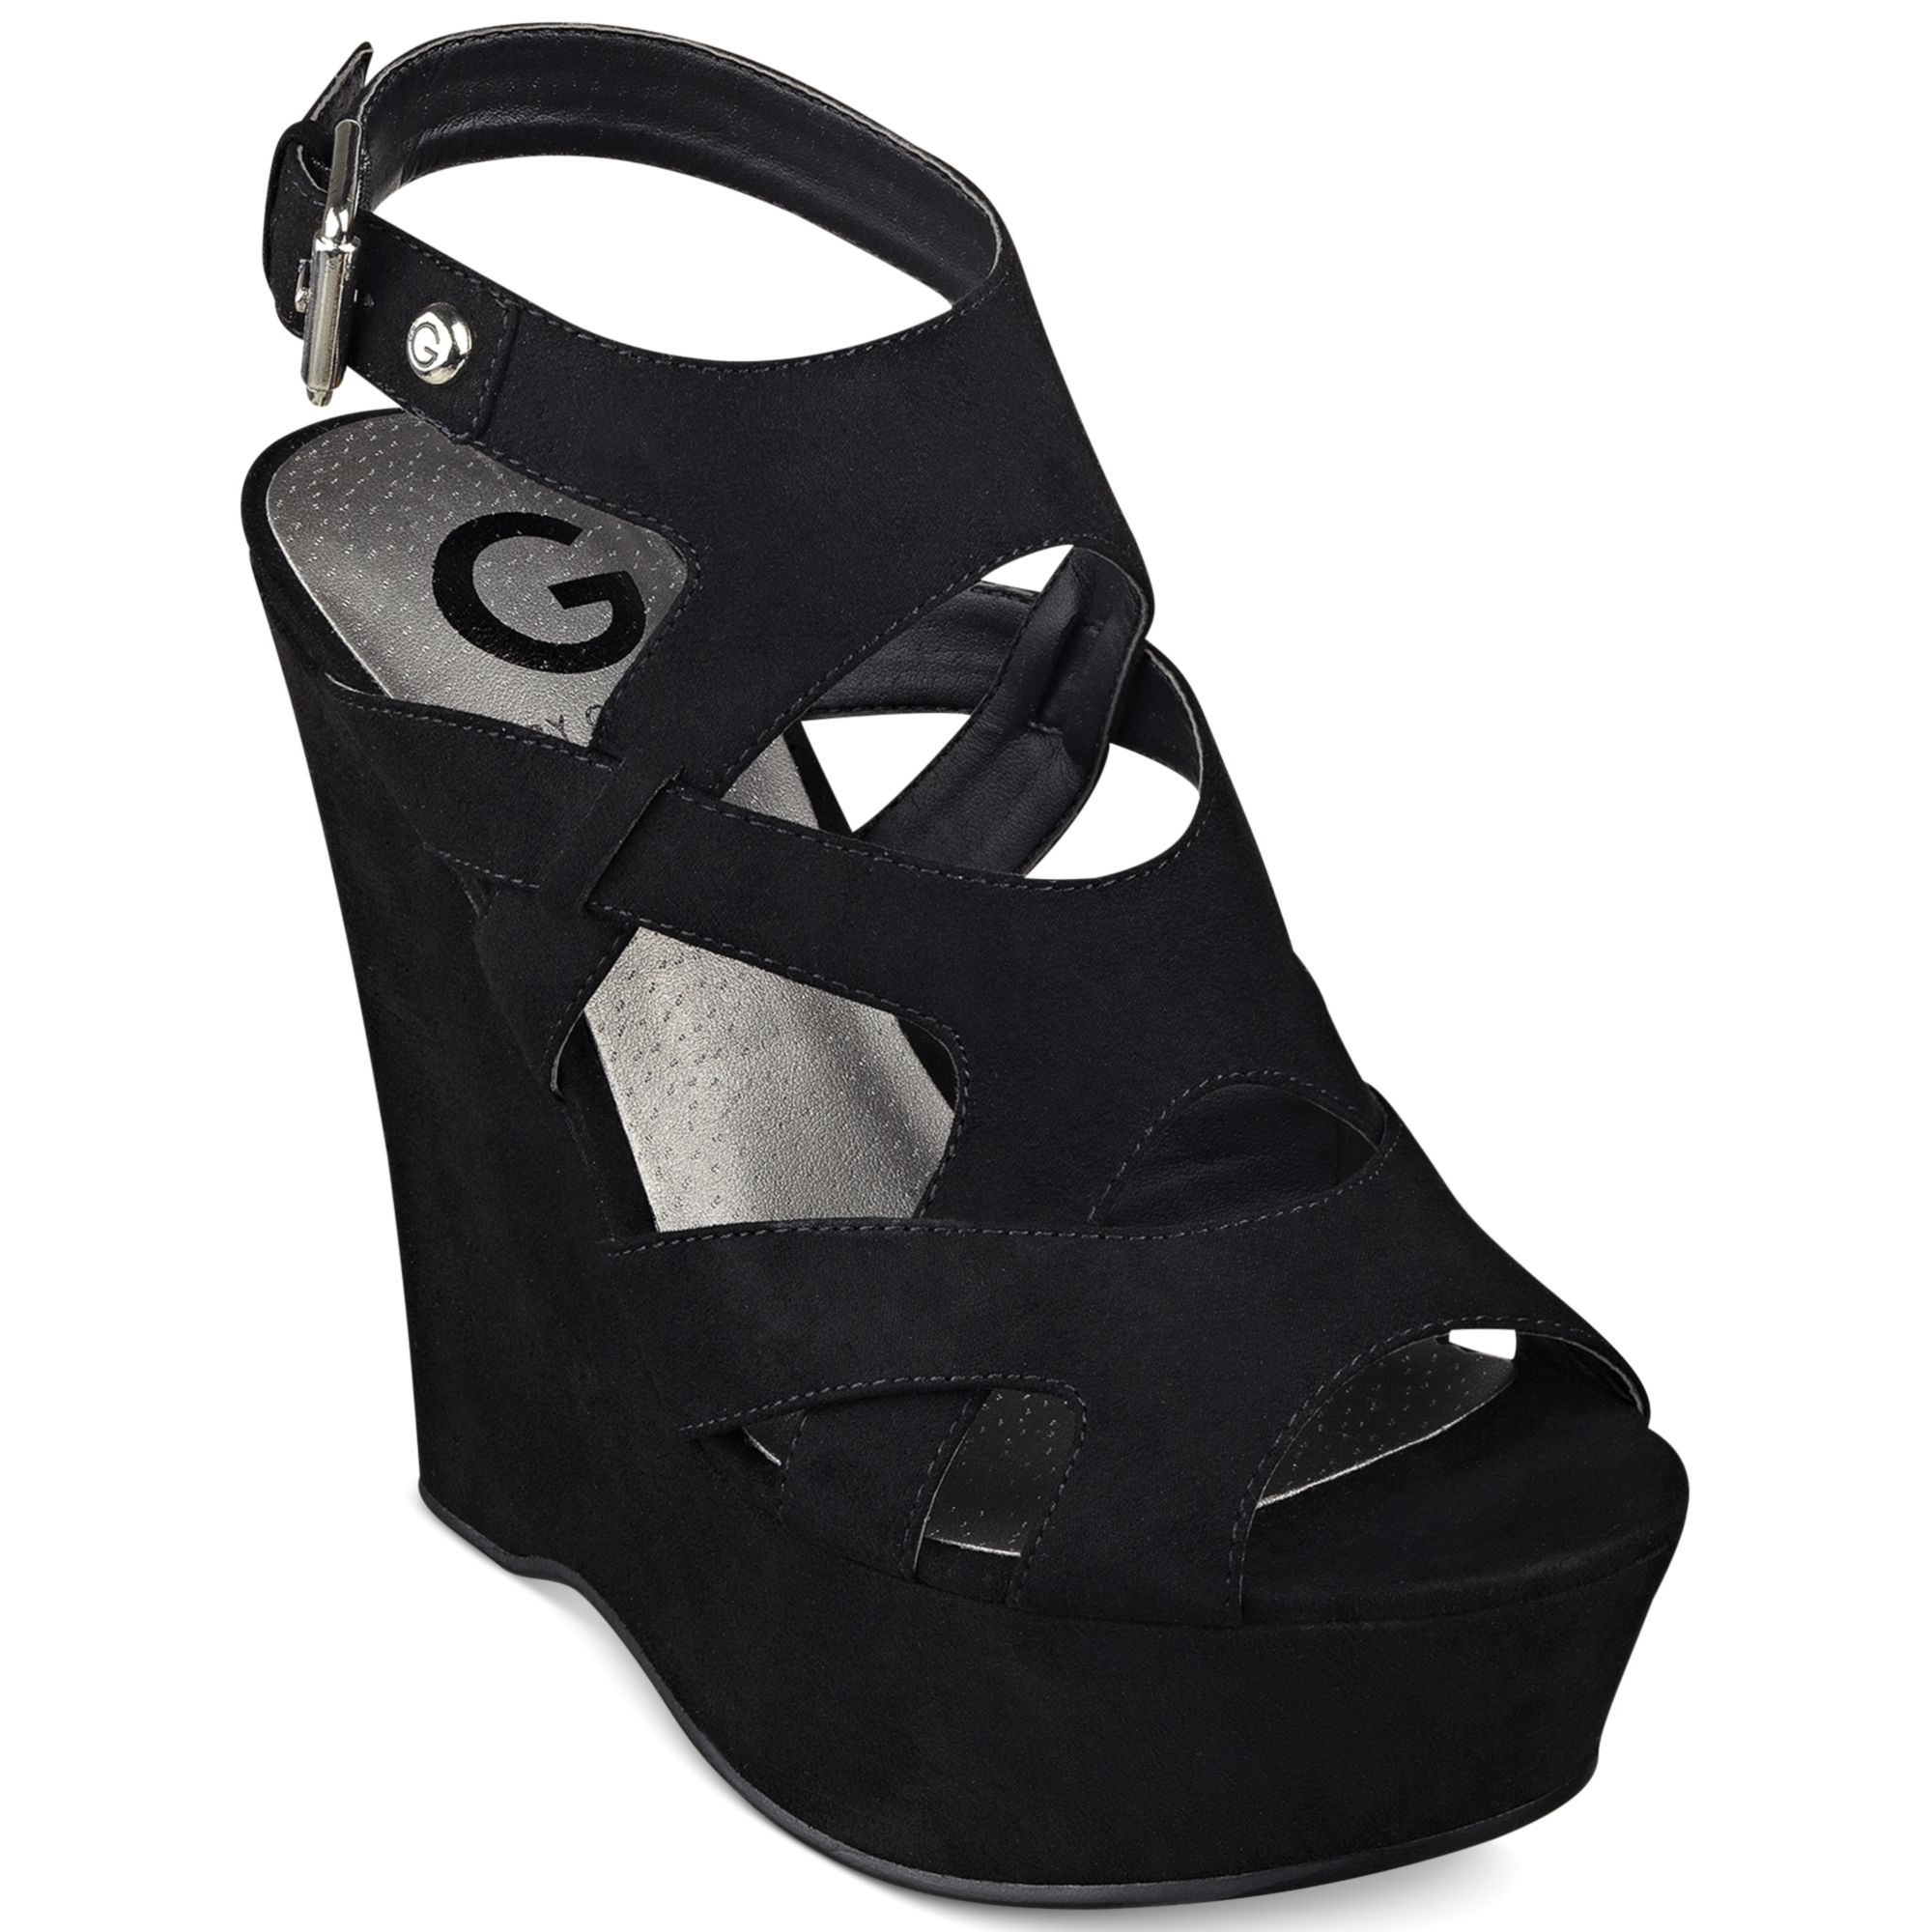 fe5c36aab G by Guess Womens Shoes Hizza Platform Wedge Sandals in Black - Lyst